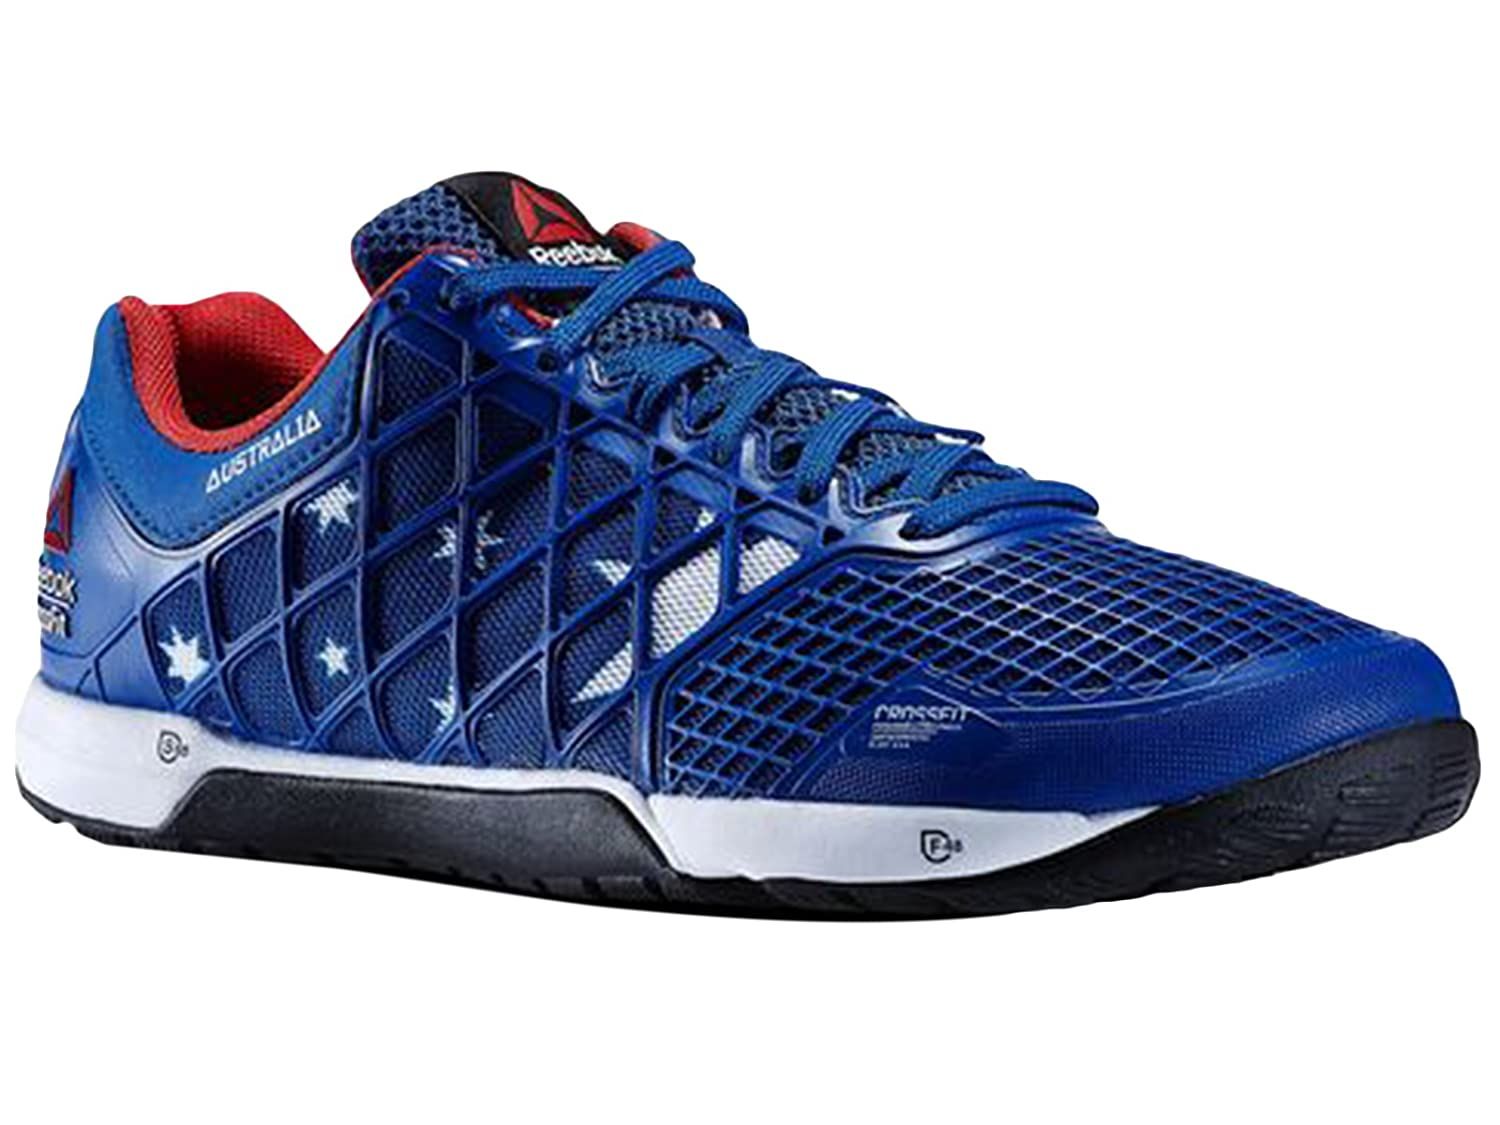 043dcdefe3d6 mens reebok nano 4.0 cheap   OFF75% The Largest Catalog Discounts